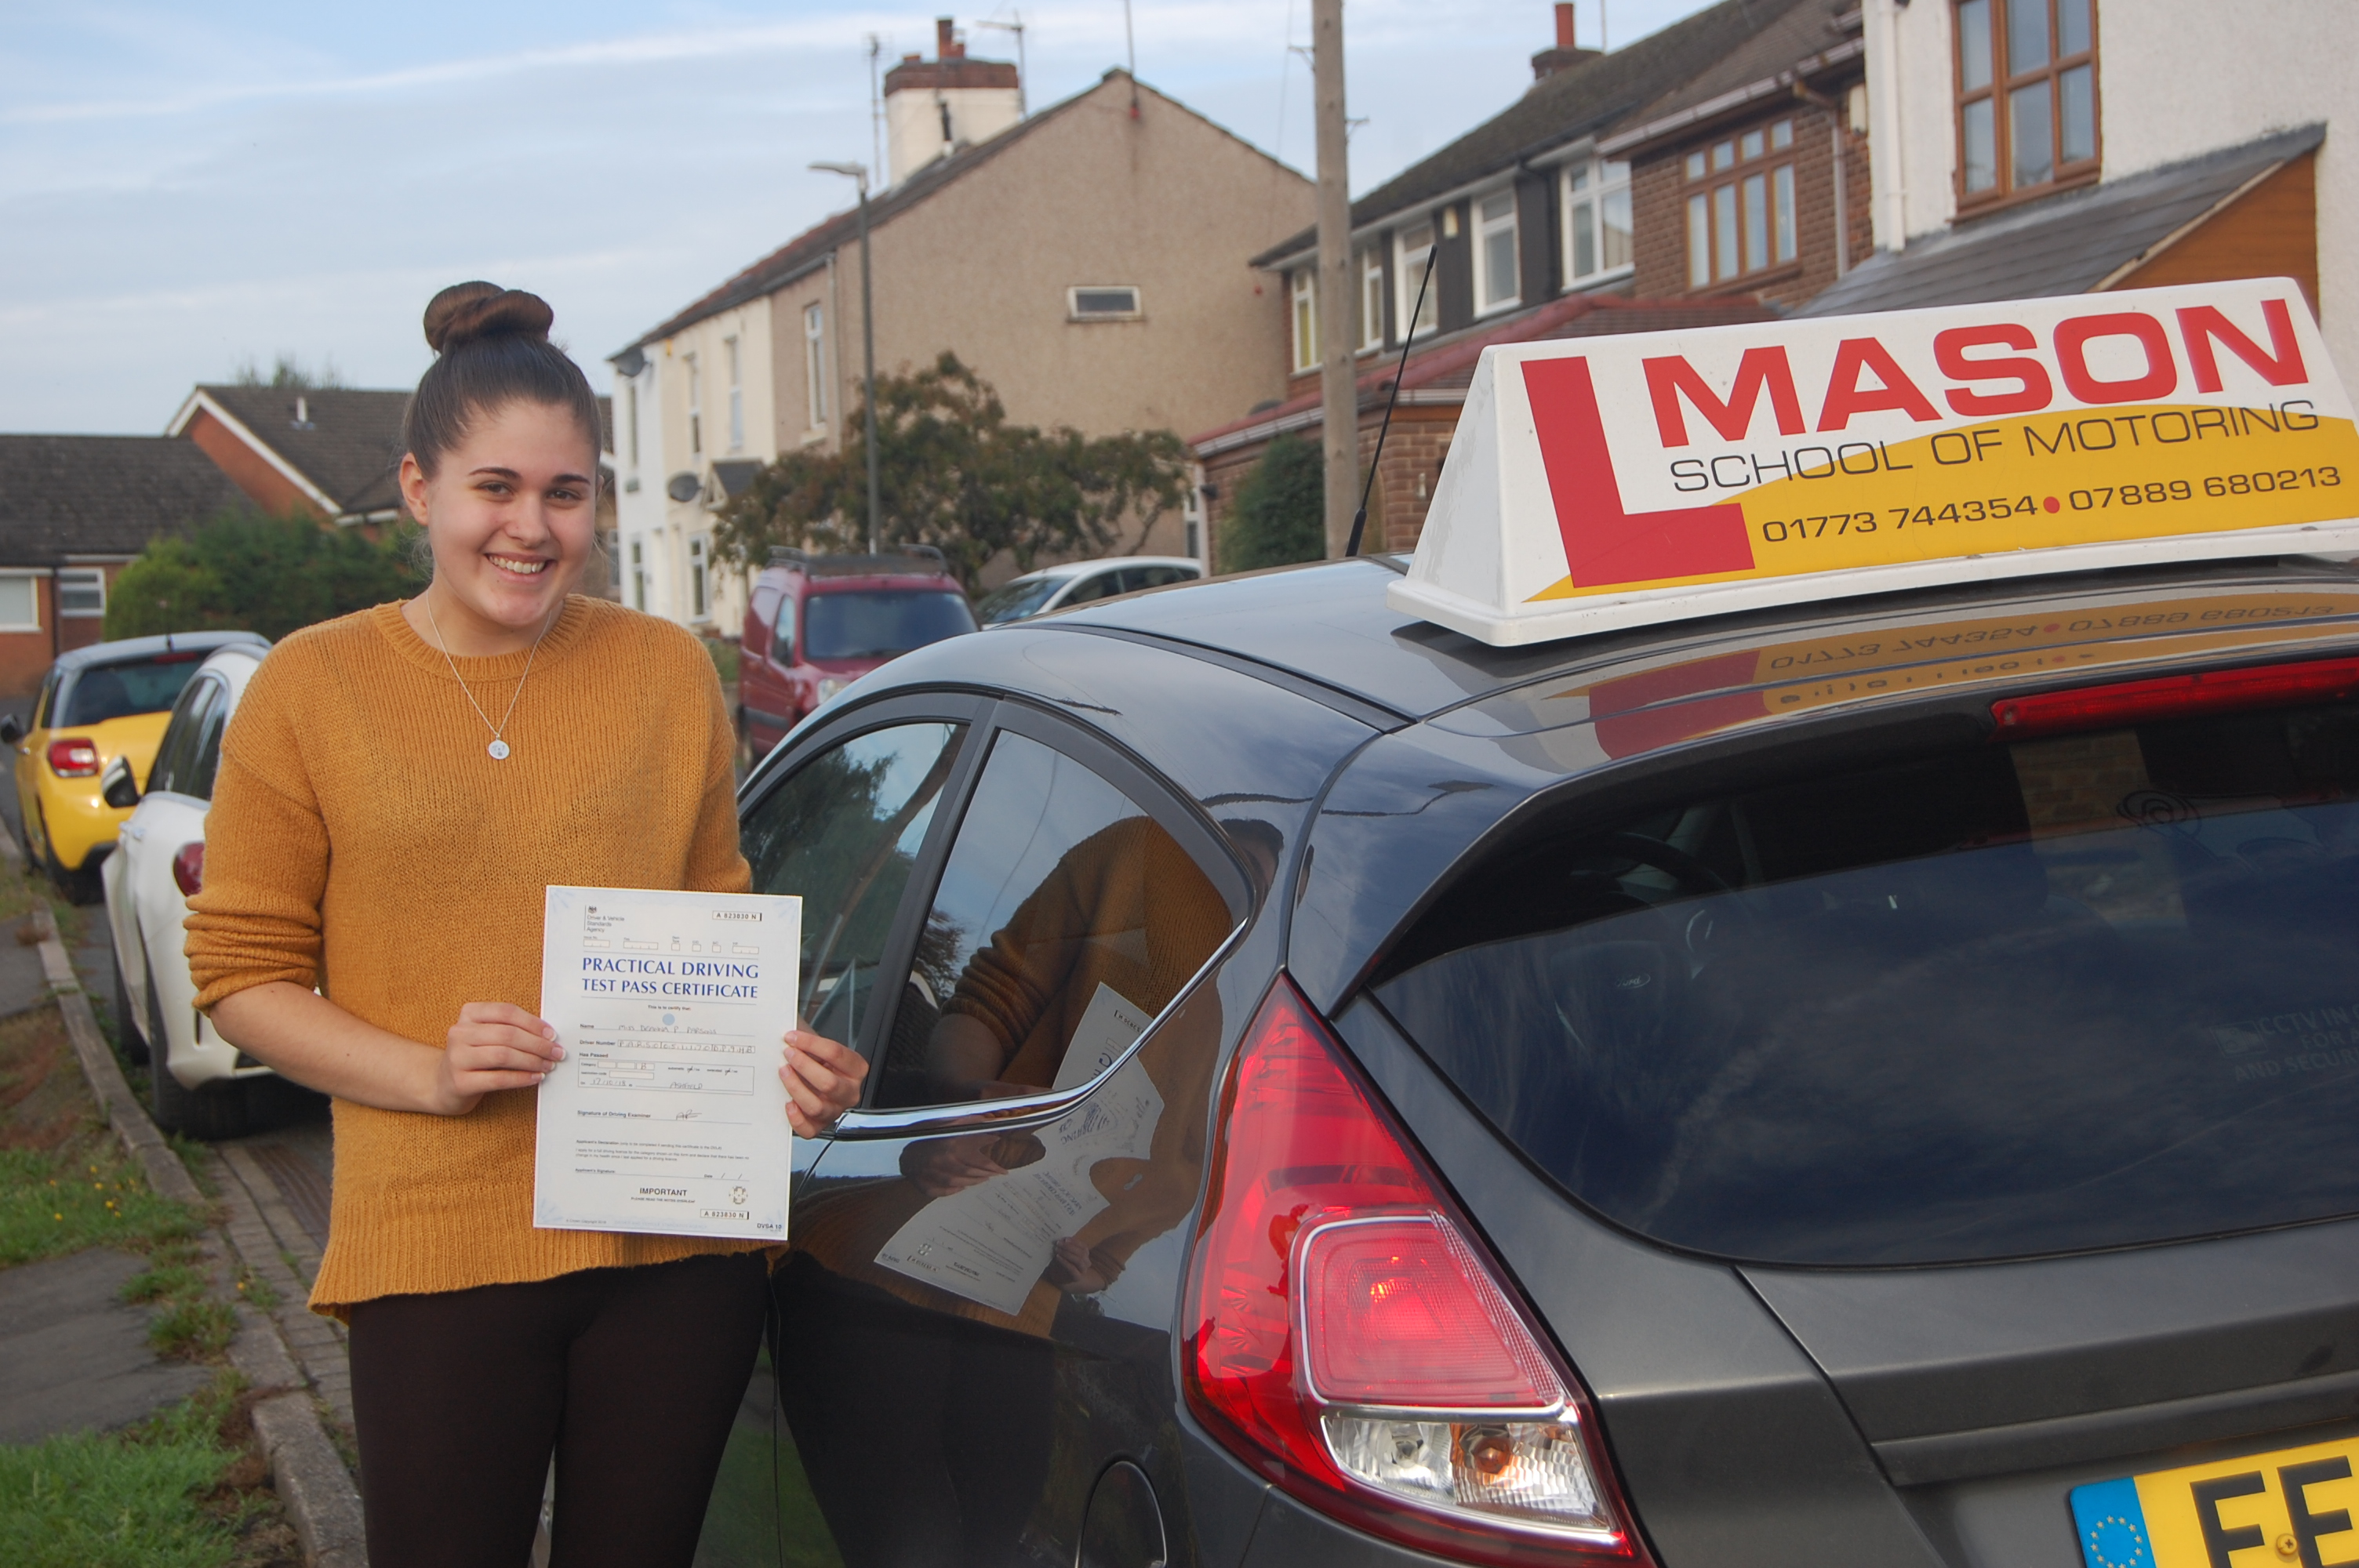 At Mason School of Motoring, our aim is to achieve a high